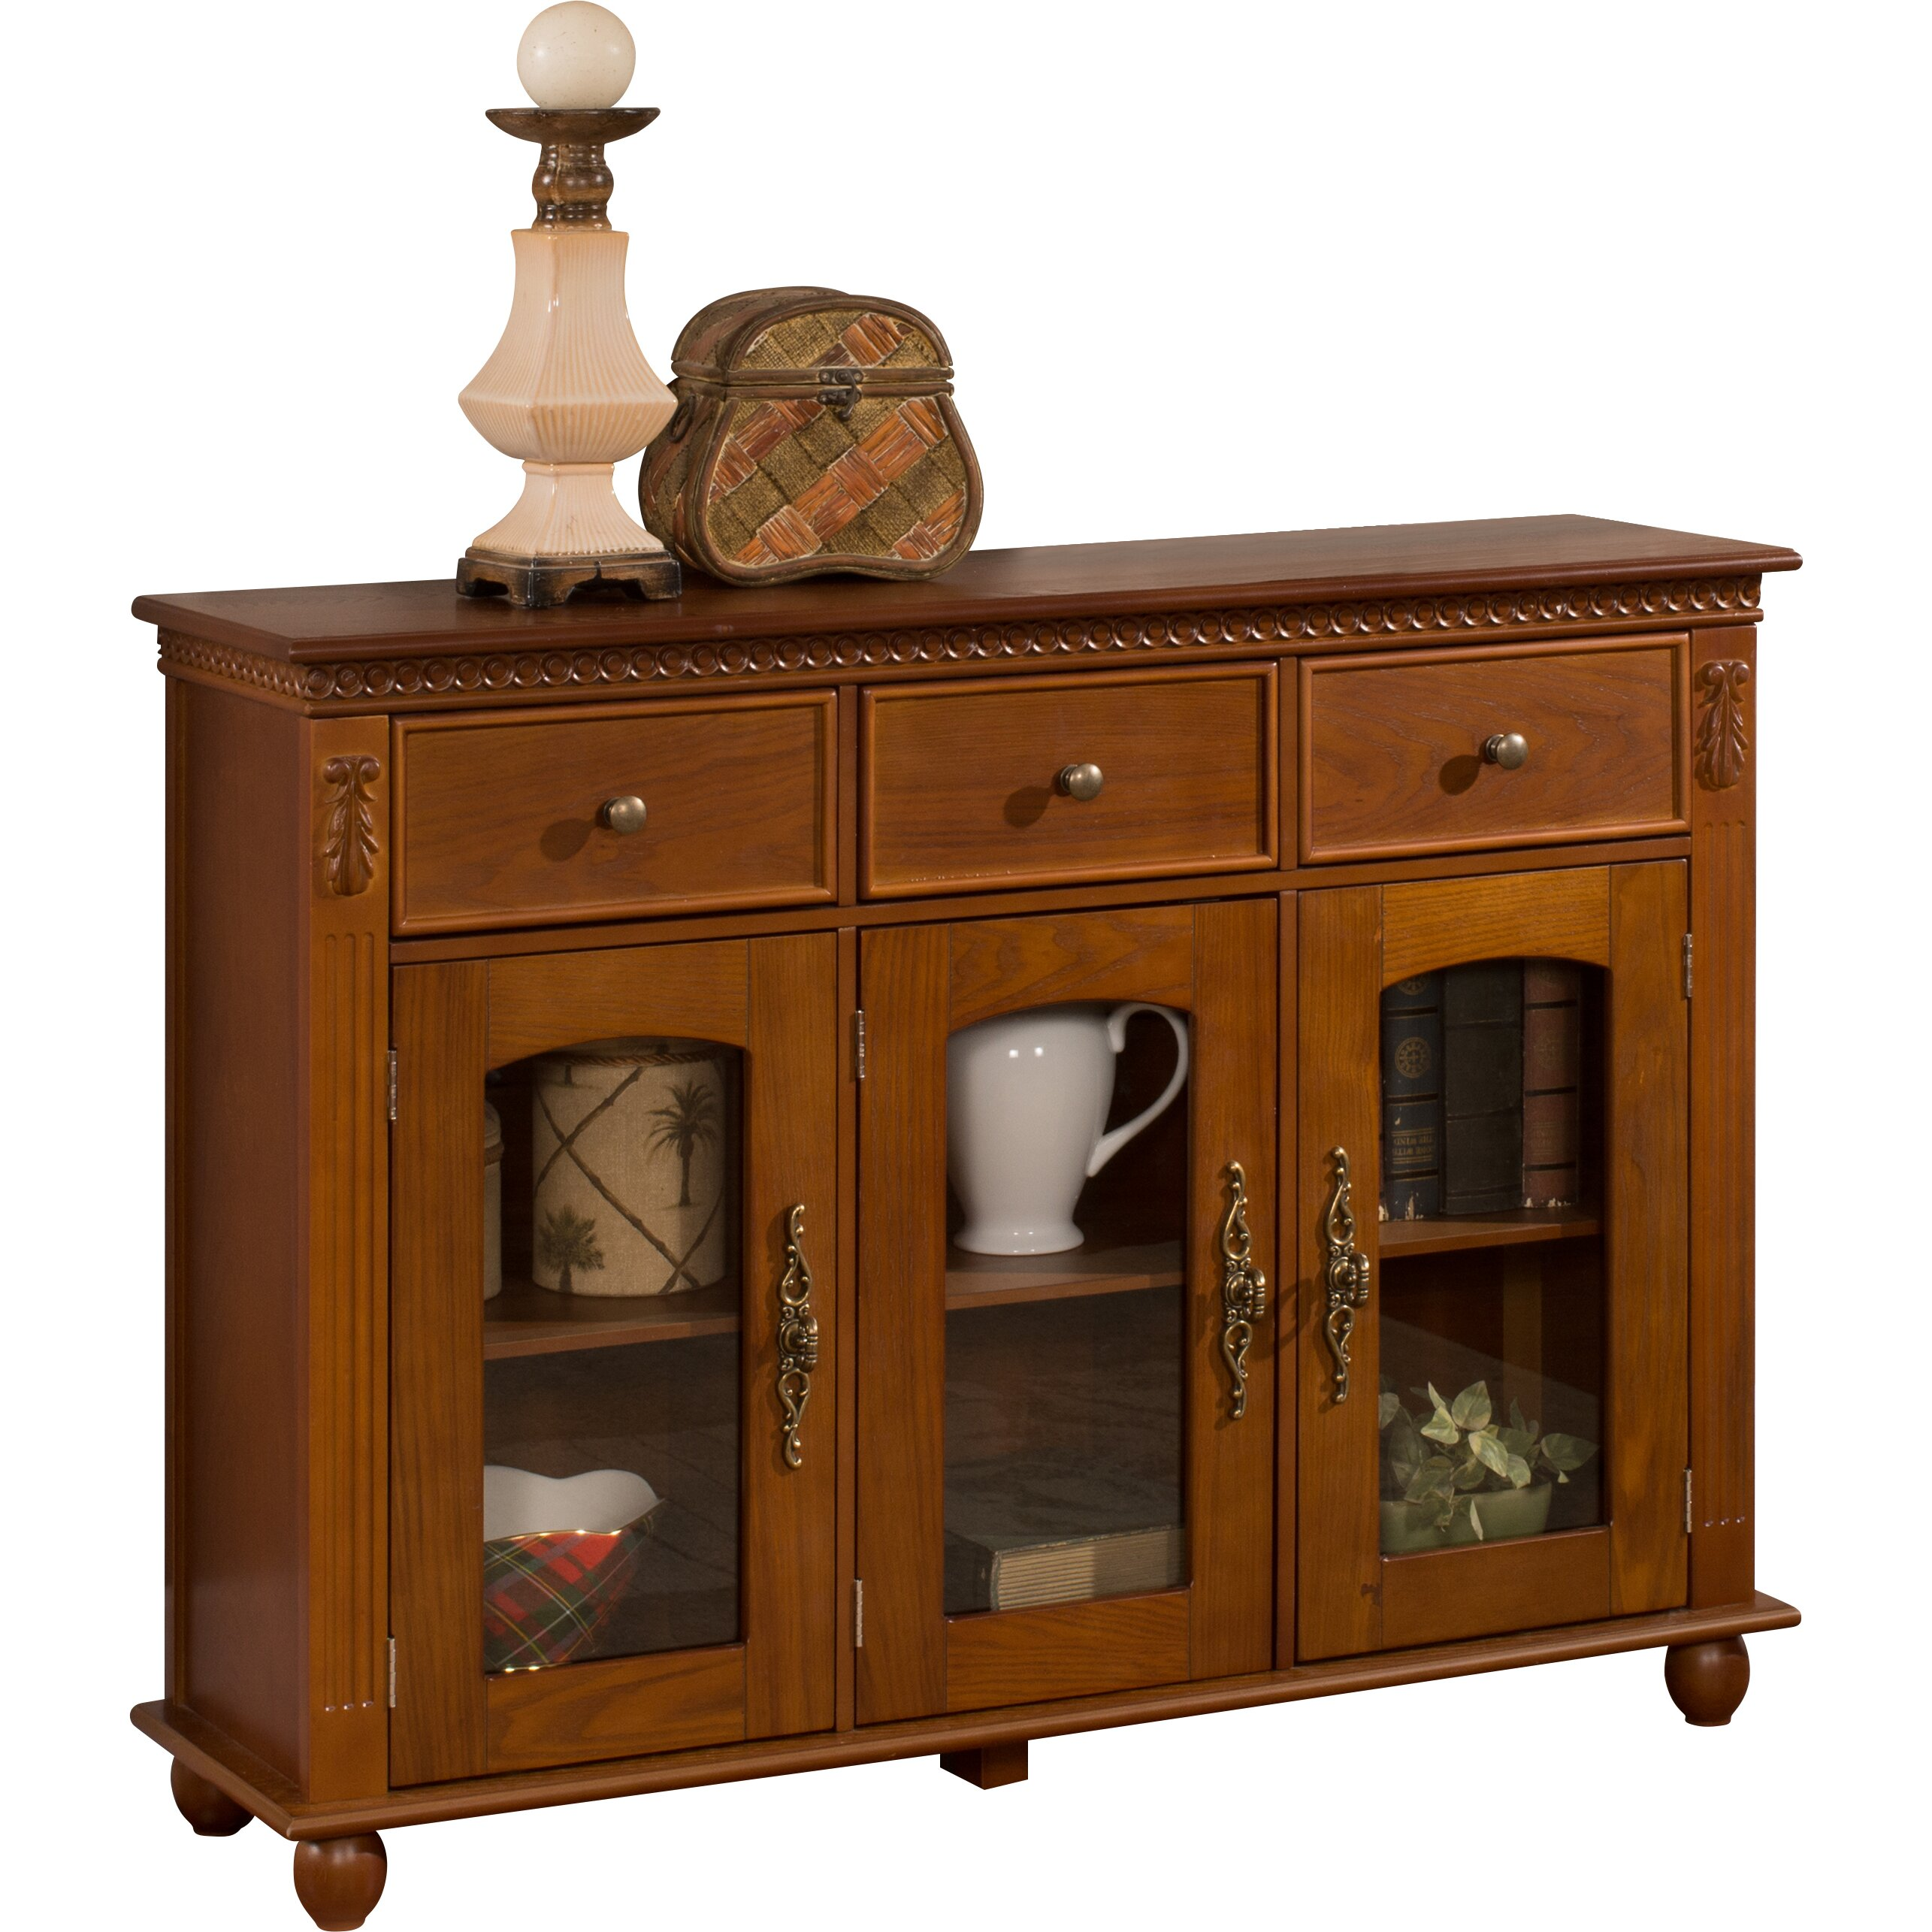 Inroom Designs Console Table Cabinet Reviews Wayfair: in room designs